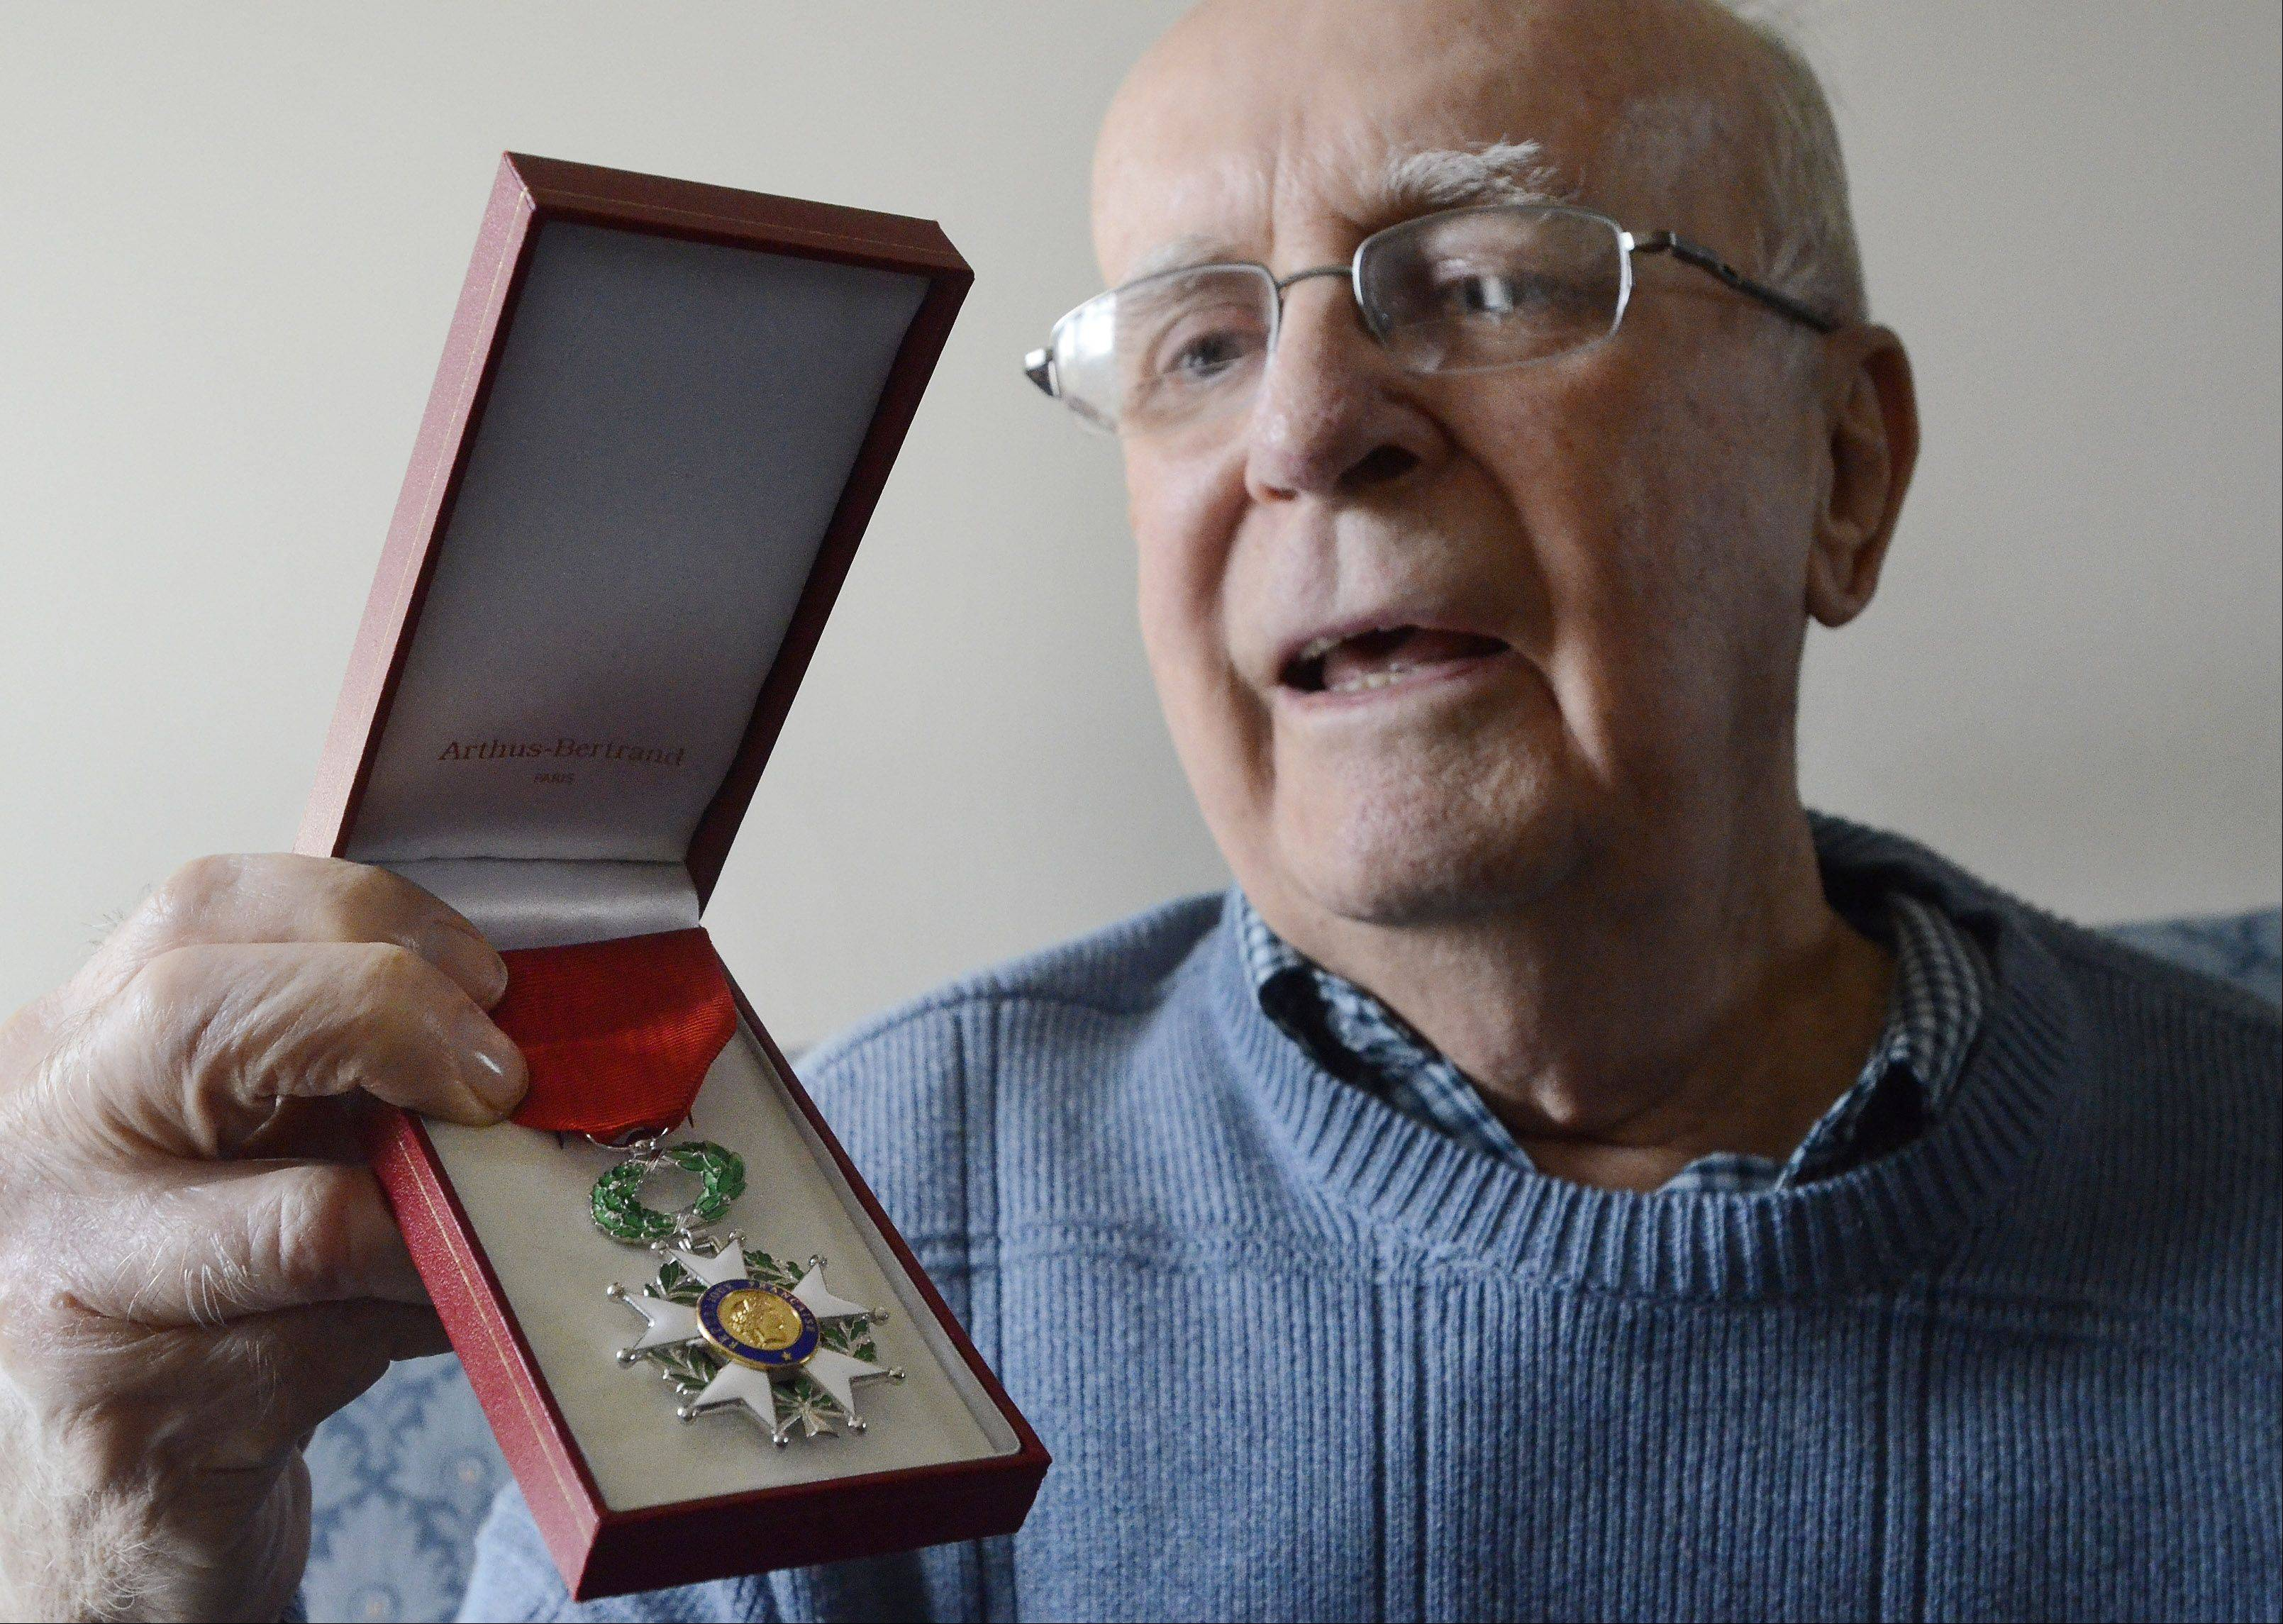 Schaumburg D-Day veteran to be knighted by the French